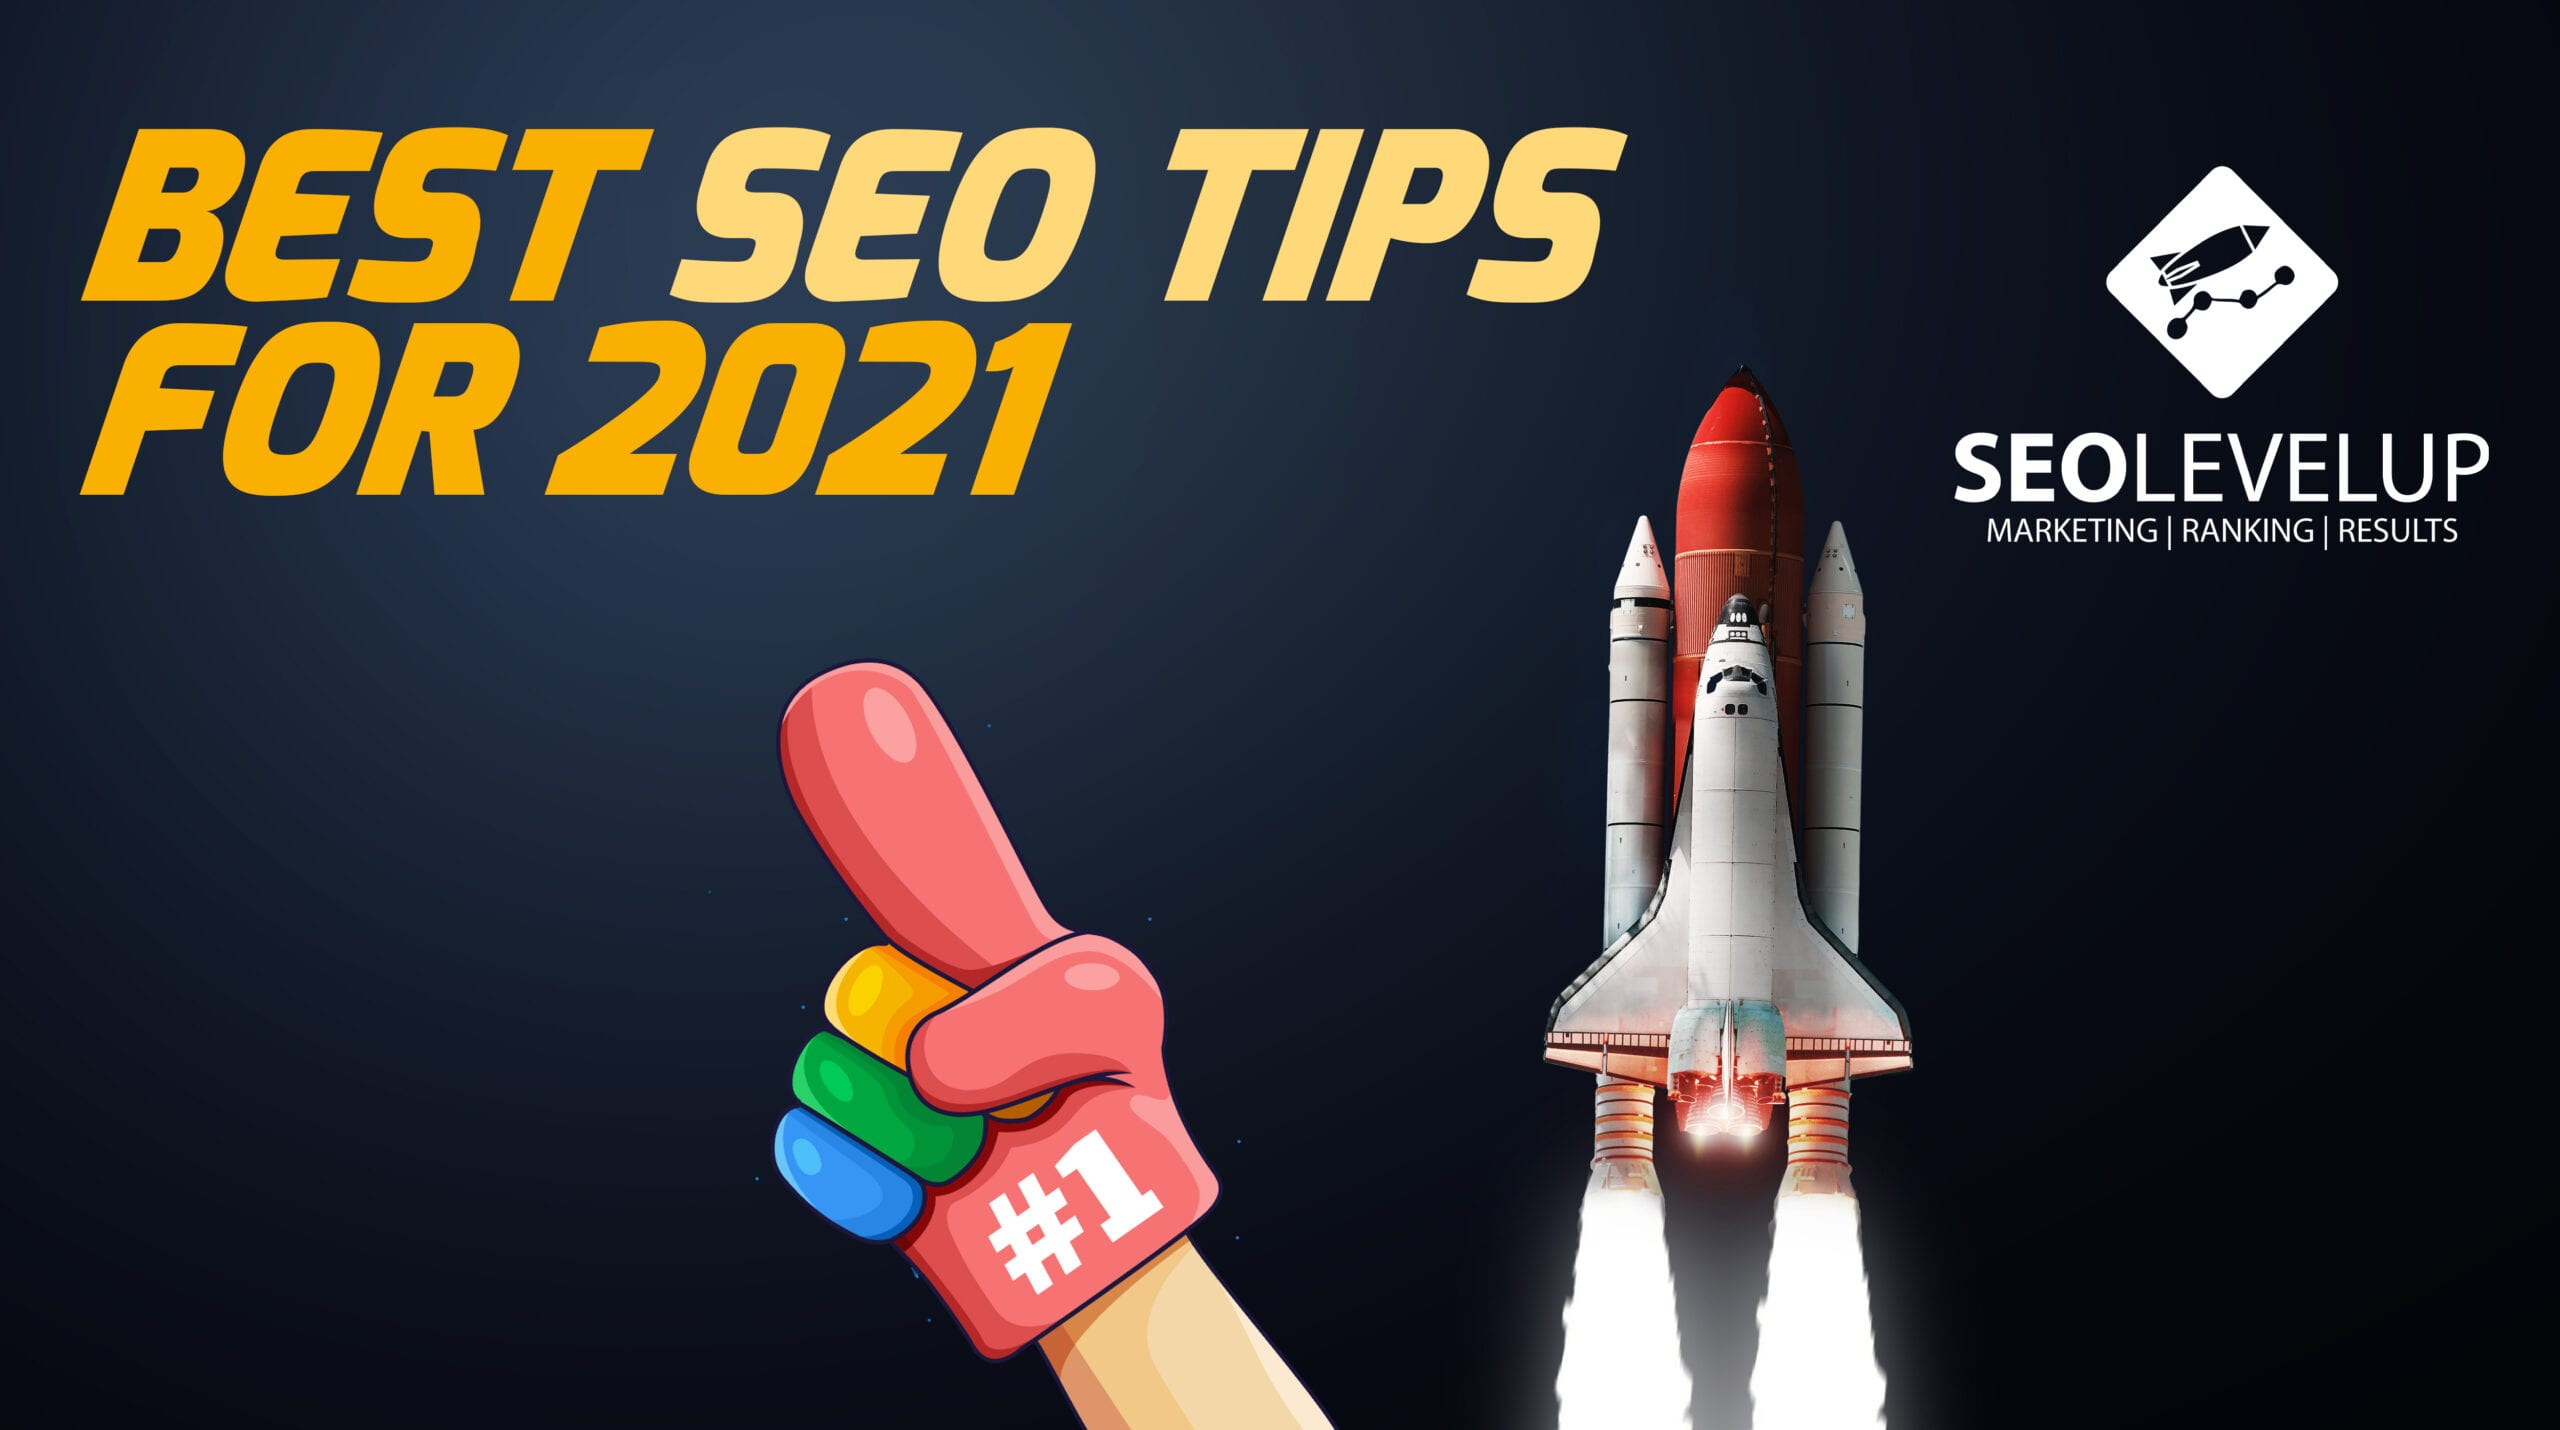 Best SEO Tips to Implement in 2021